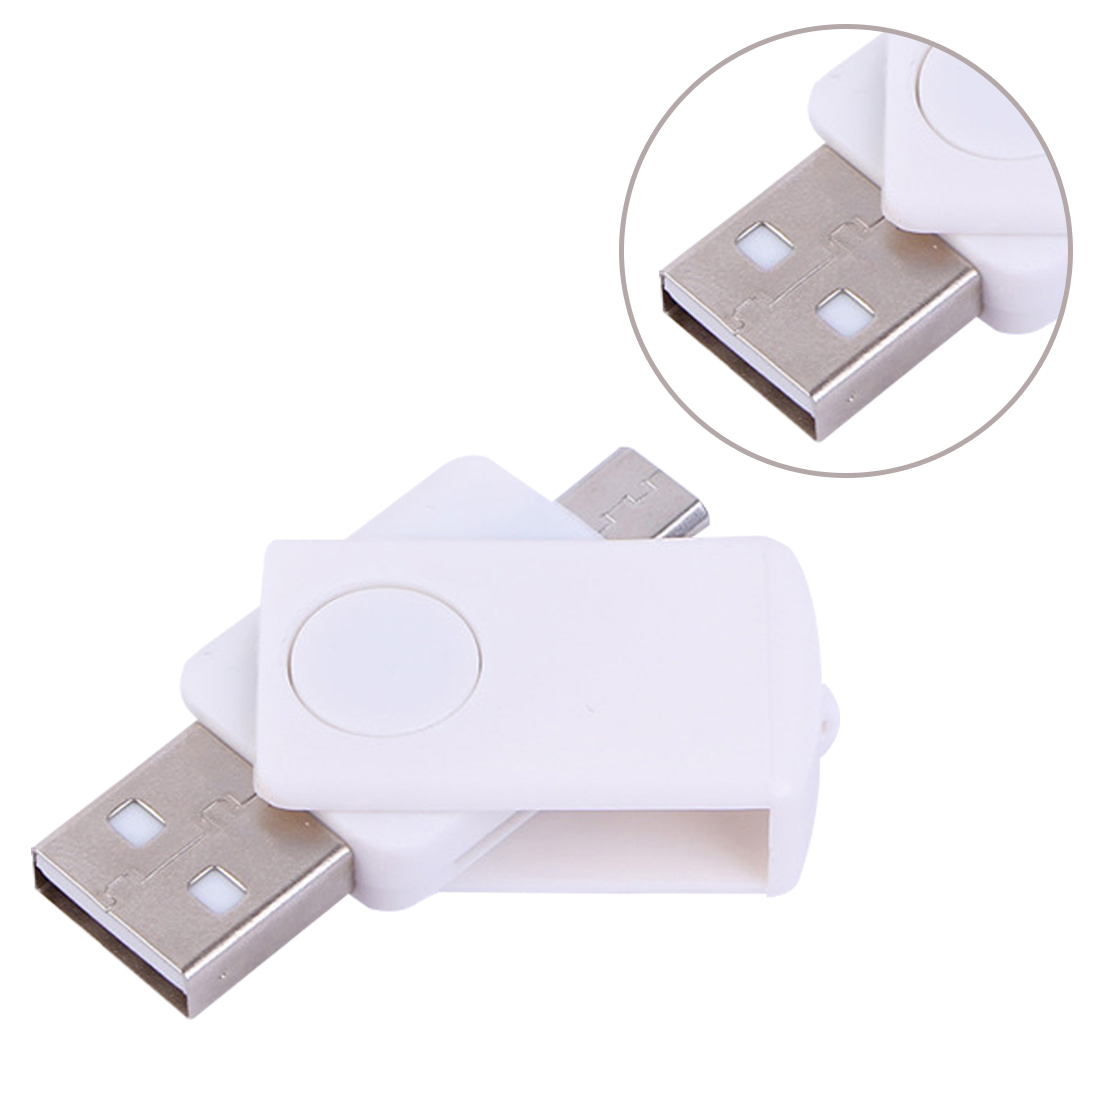 Image 5 - Etmakit Mini USB Card Reader OTG Micro USB TF Card USB 2.0 Memory Card Adapter High Quality Connection Kit For PC Smartphone-in Card Readers from Computer & Office